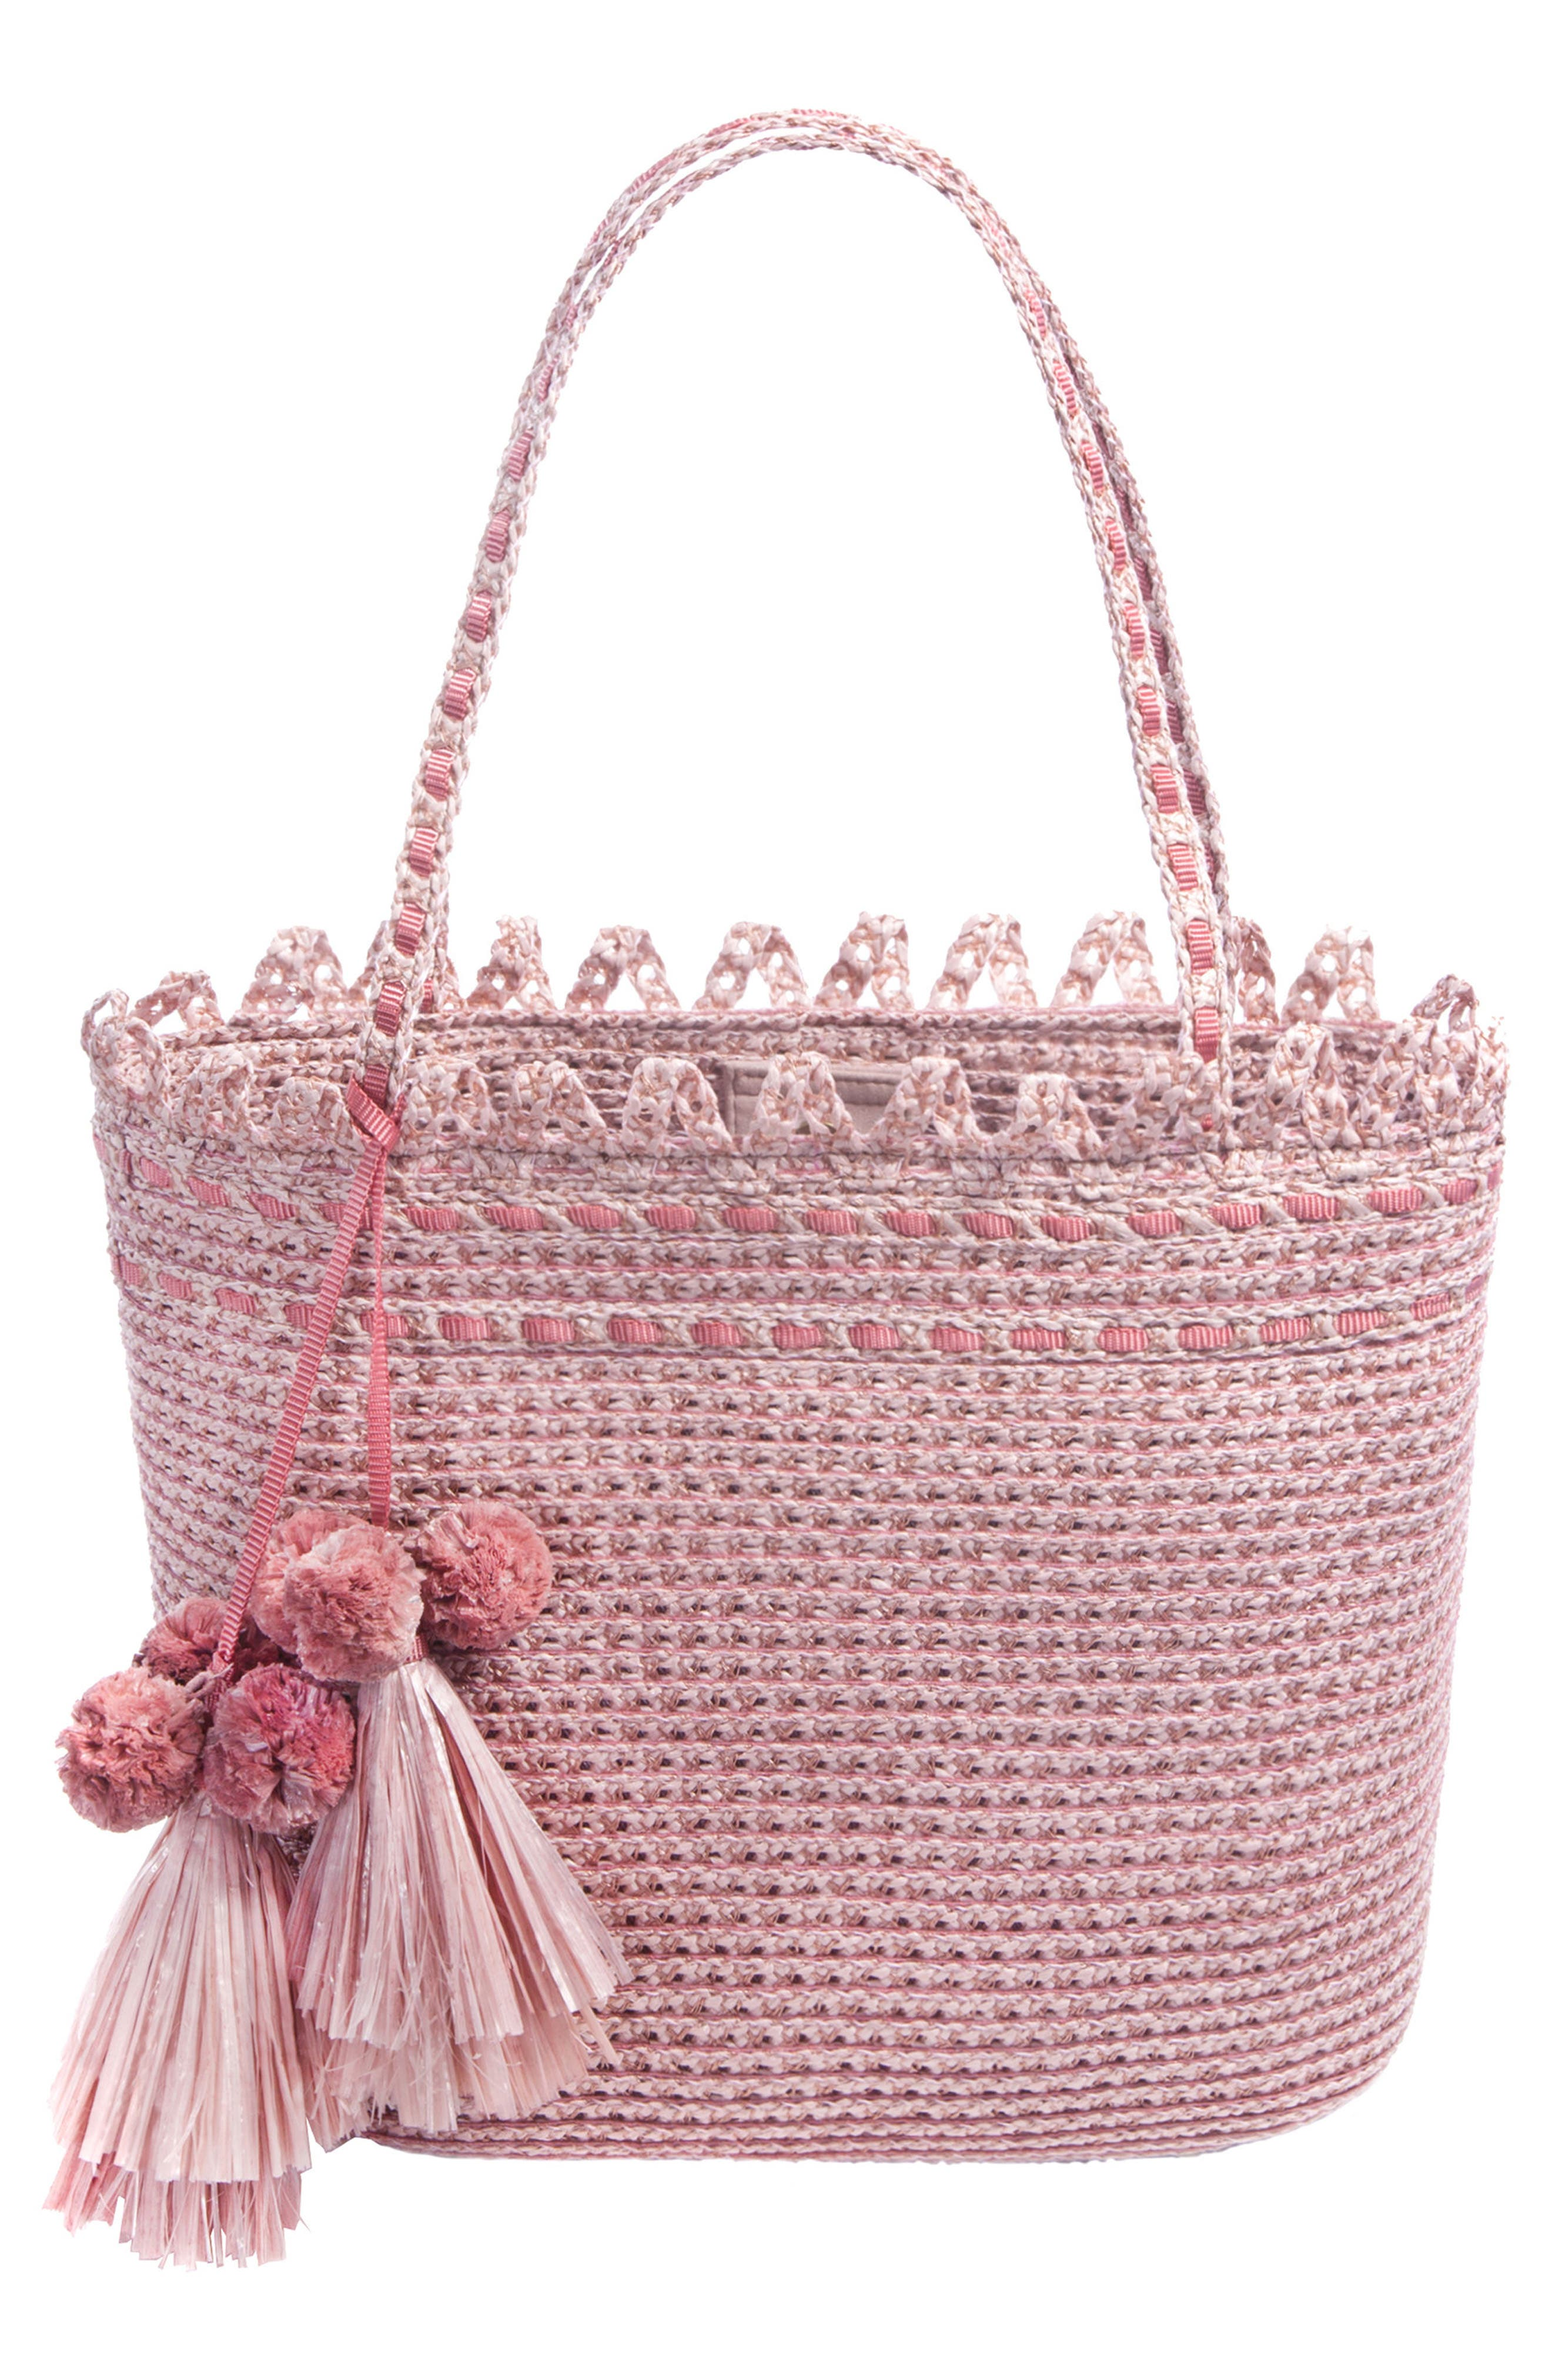 Bardot Squishee<sup>®</sup> Tote,                             Main thumbnail 1, color,                             Blush